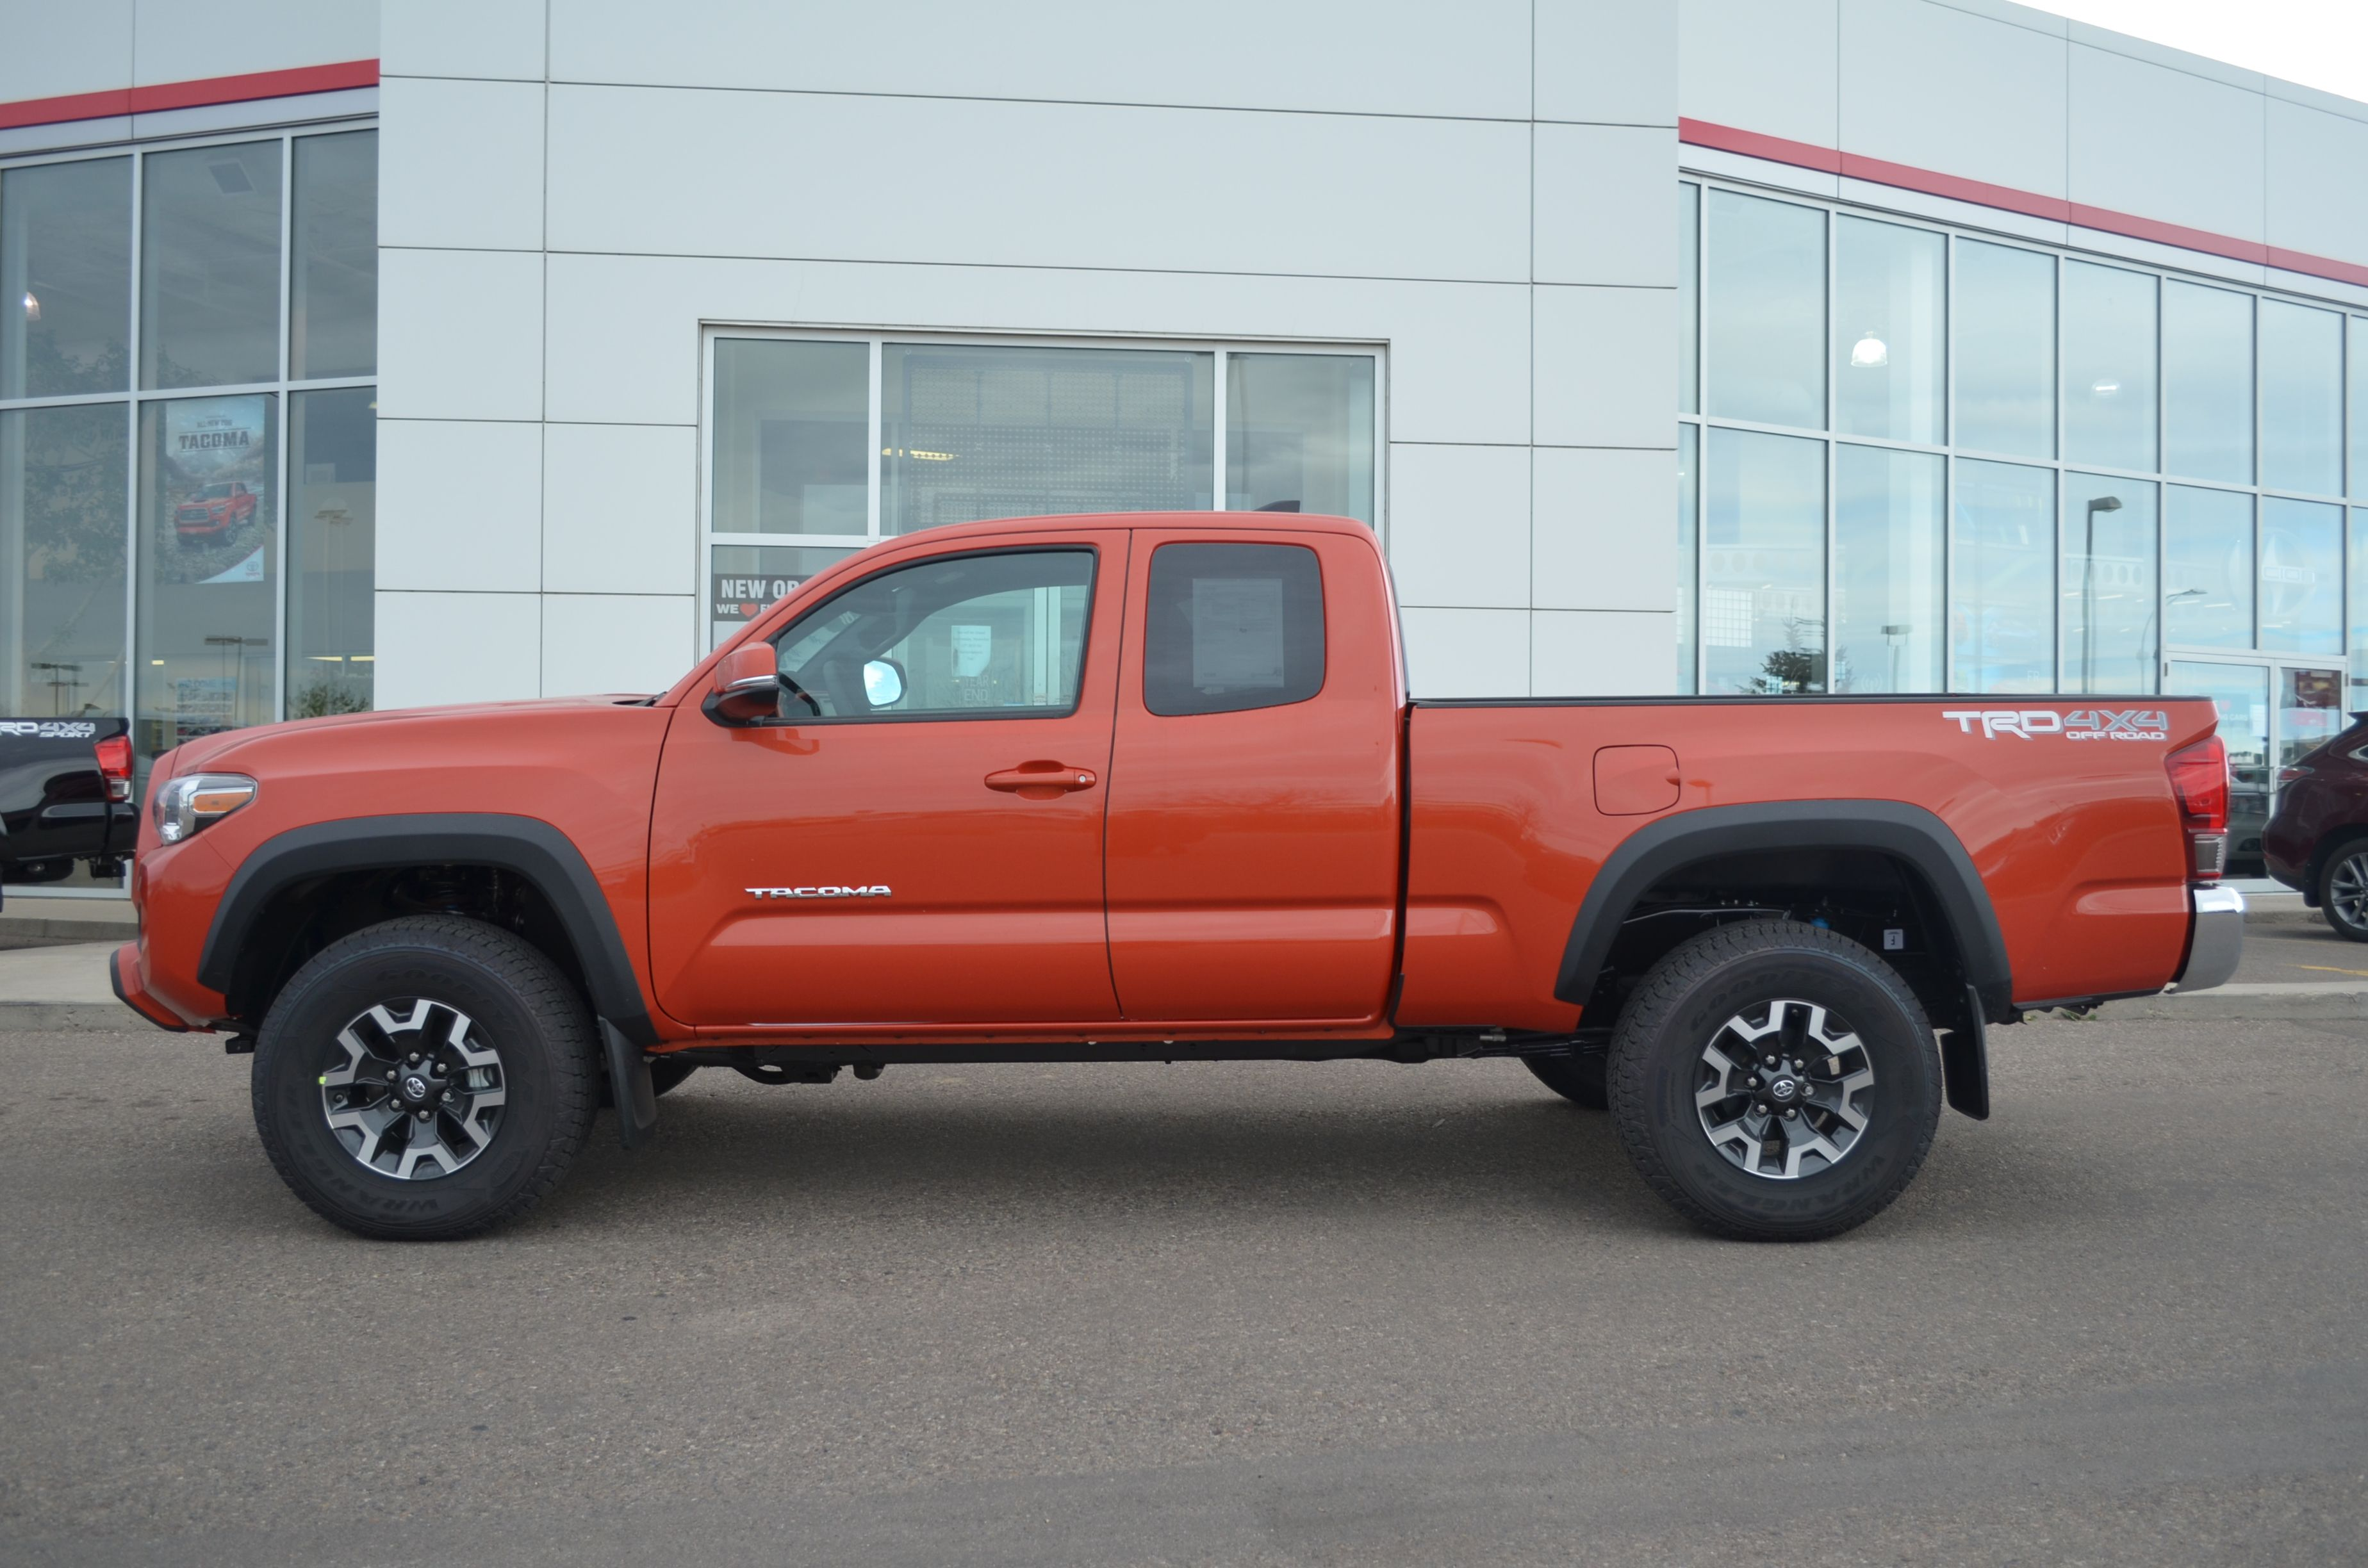 2016 toyota tacoma trd sport 4x4 in inferno 2016 toyota tacoma pinterest toyota tacoma. Black Bedroom Furniture Sets. Home Design Ideas